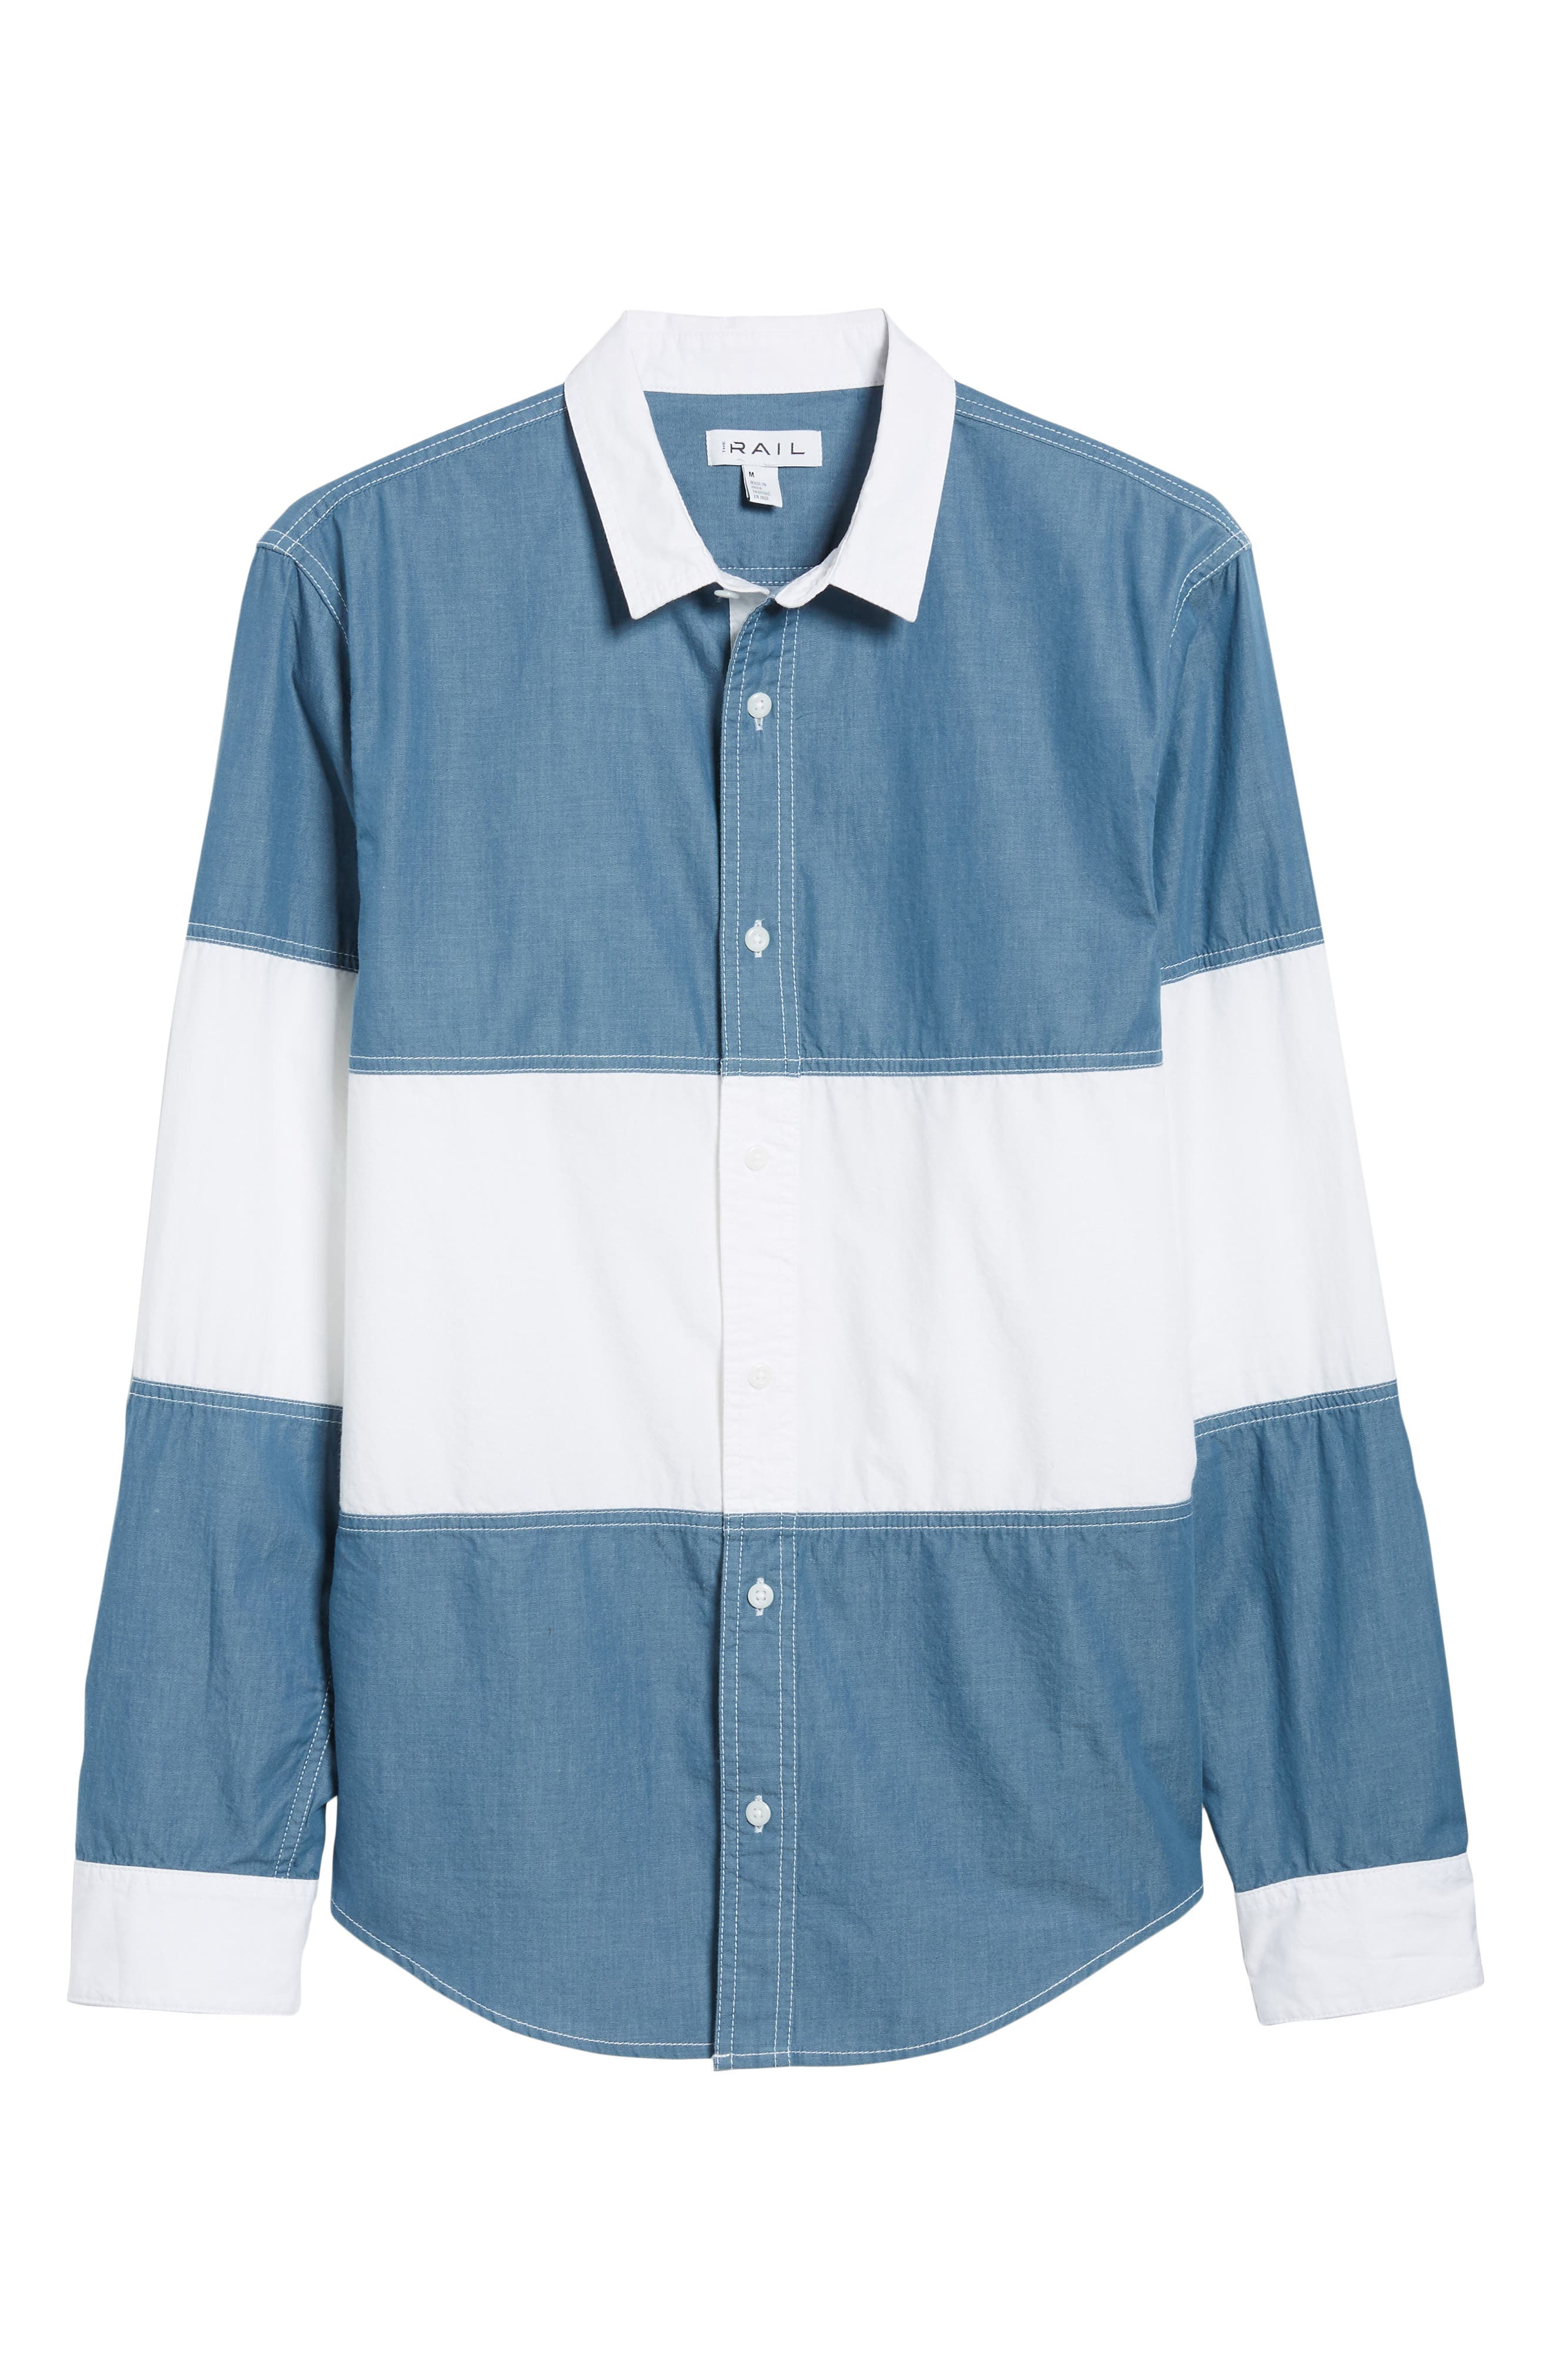 Colorblock Woven Shirt,                             Alternate thumbnail 6, color,                             Chambray White Block